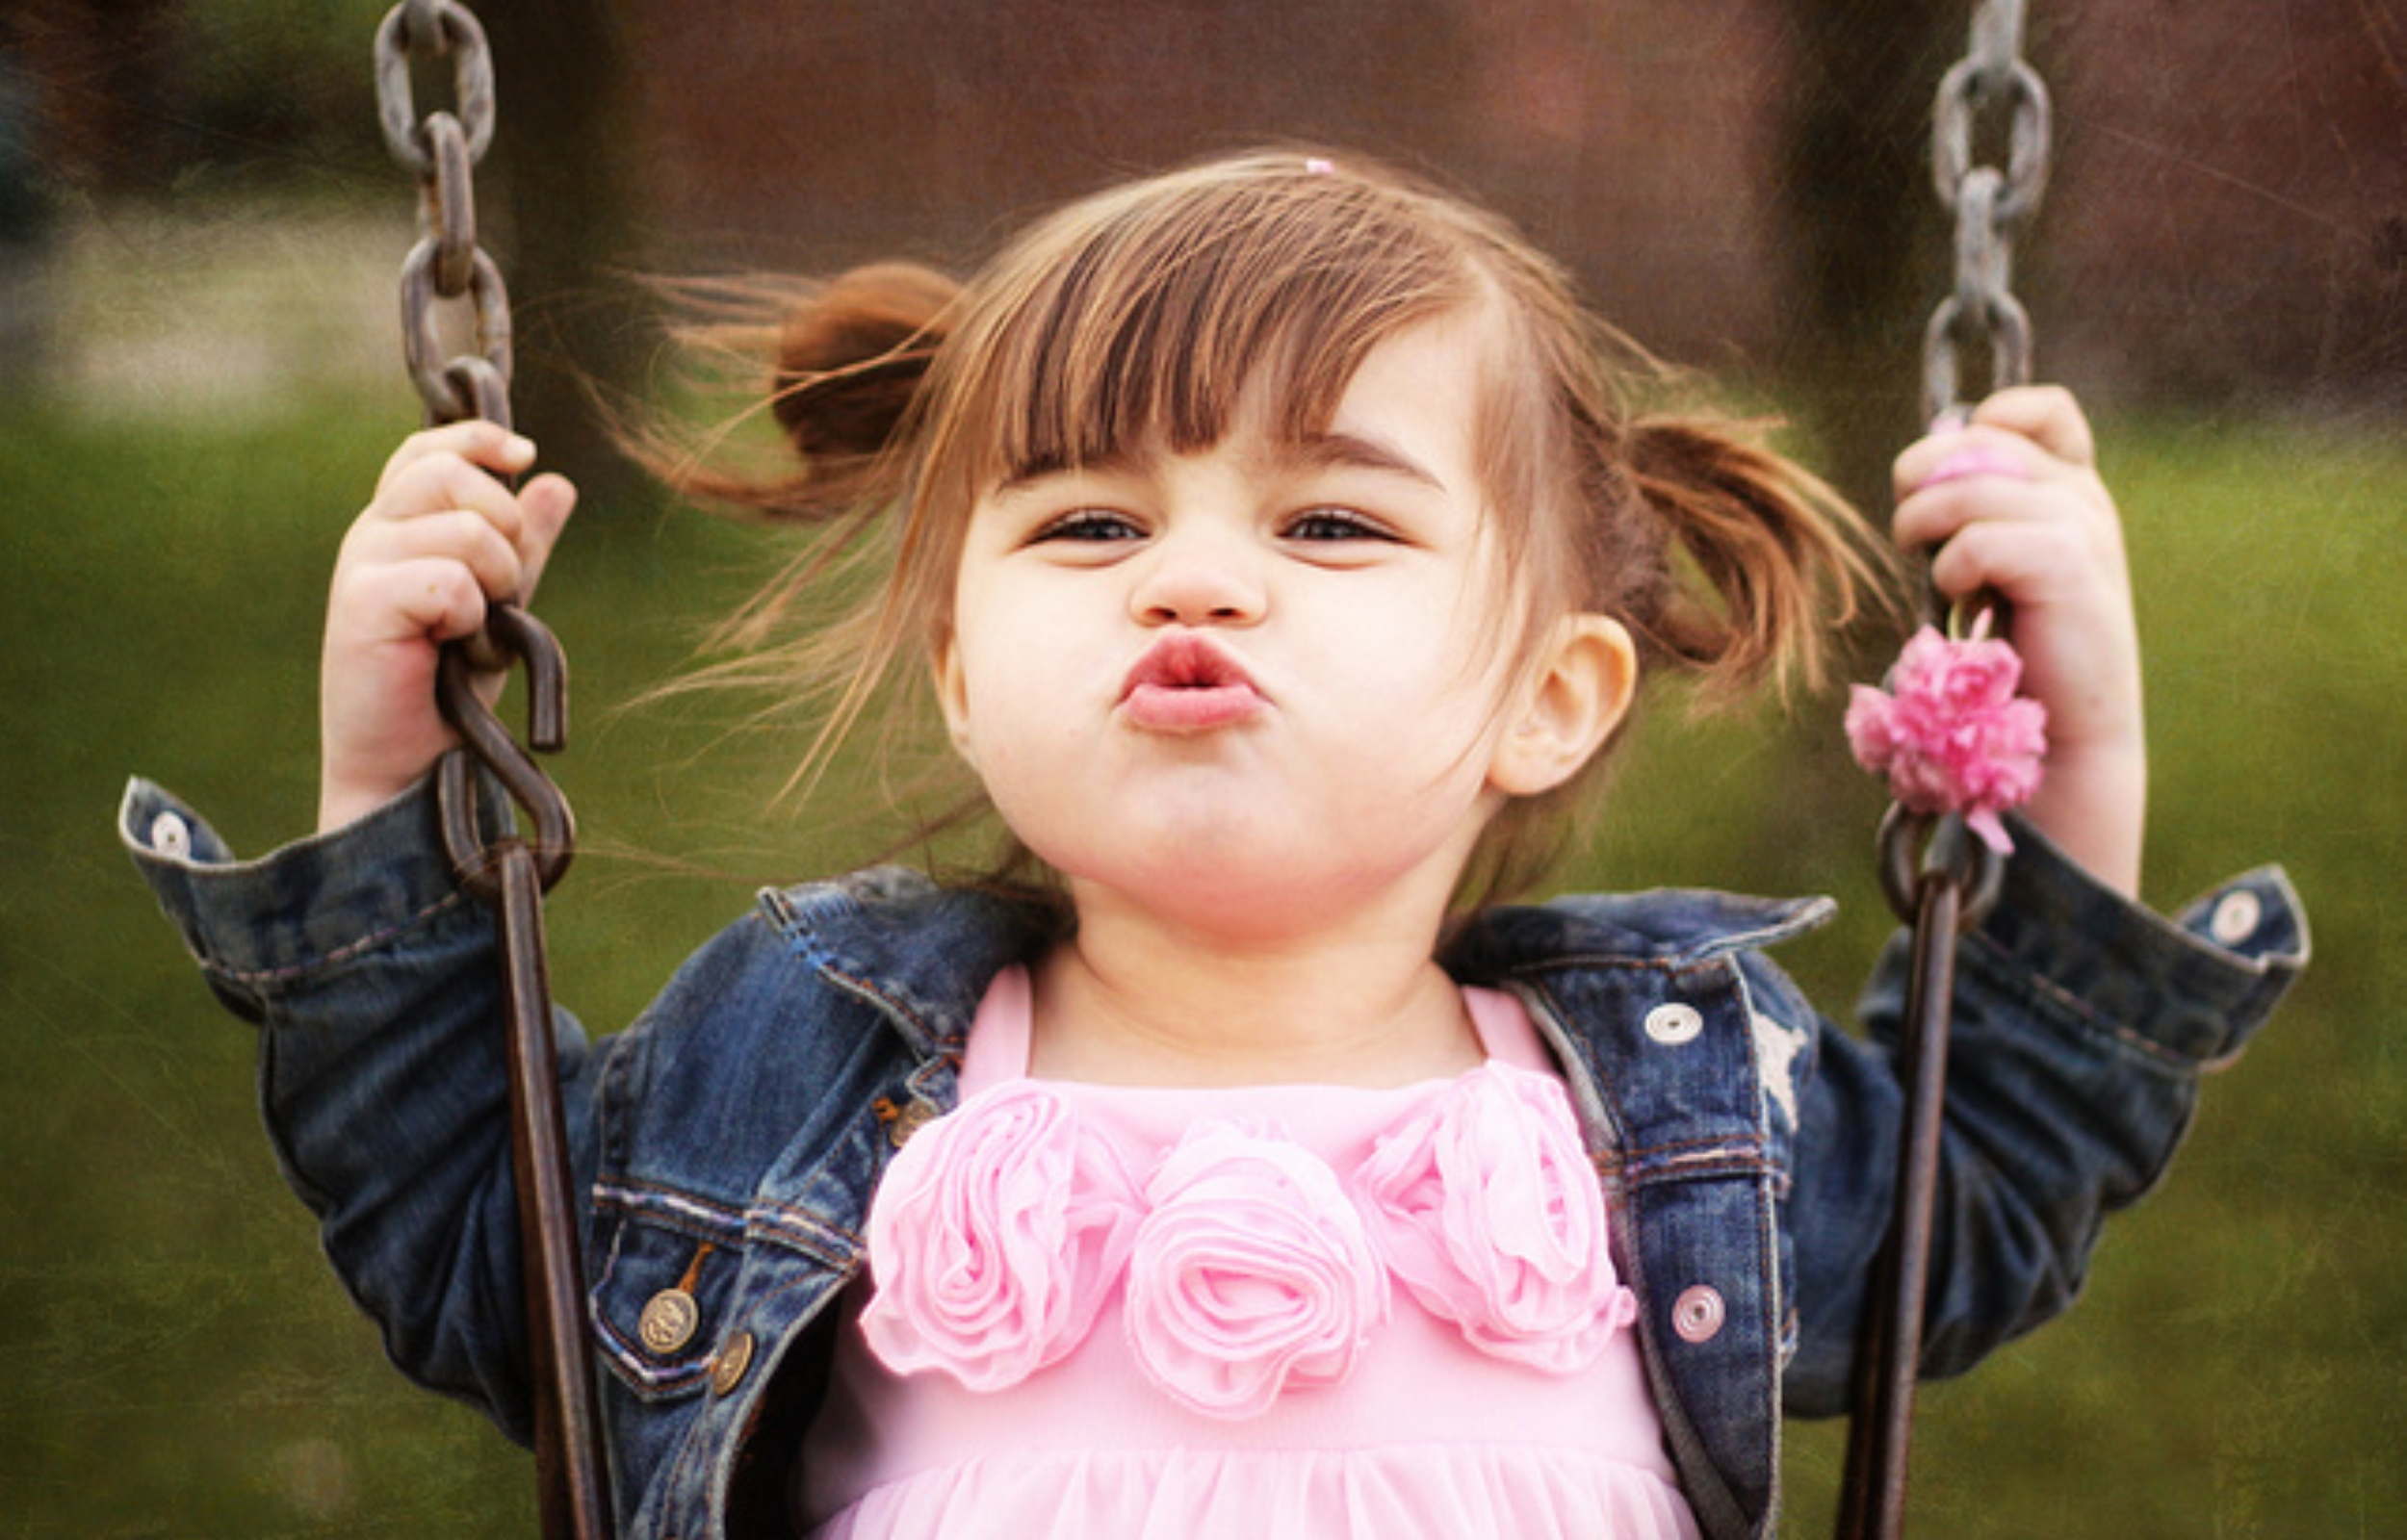 e6eaf69e1f80 Download Cute baby girl smiling - Cute baby for your mobile cell phone